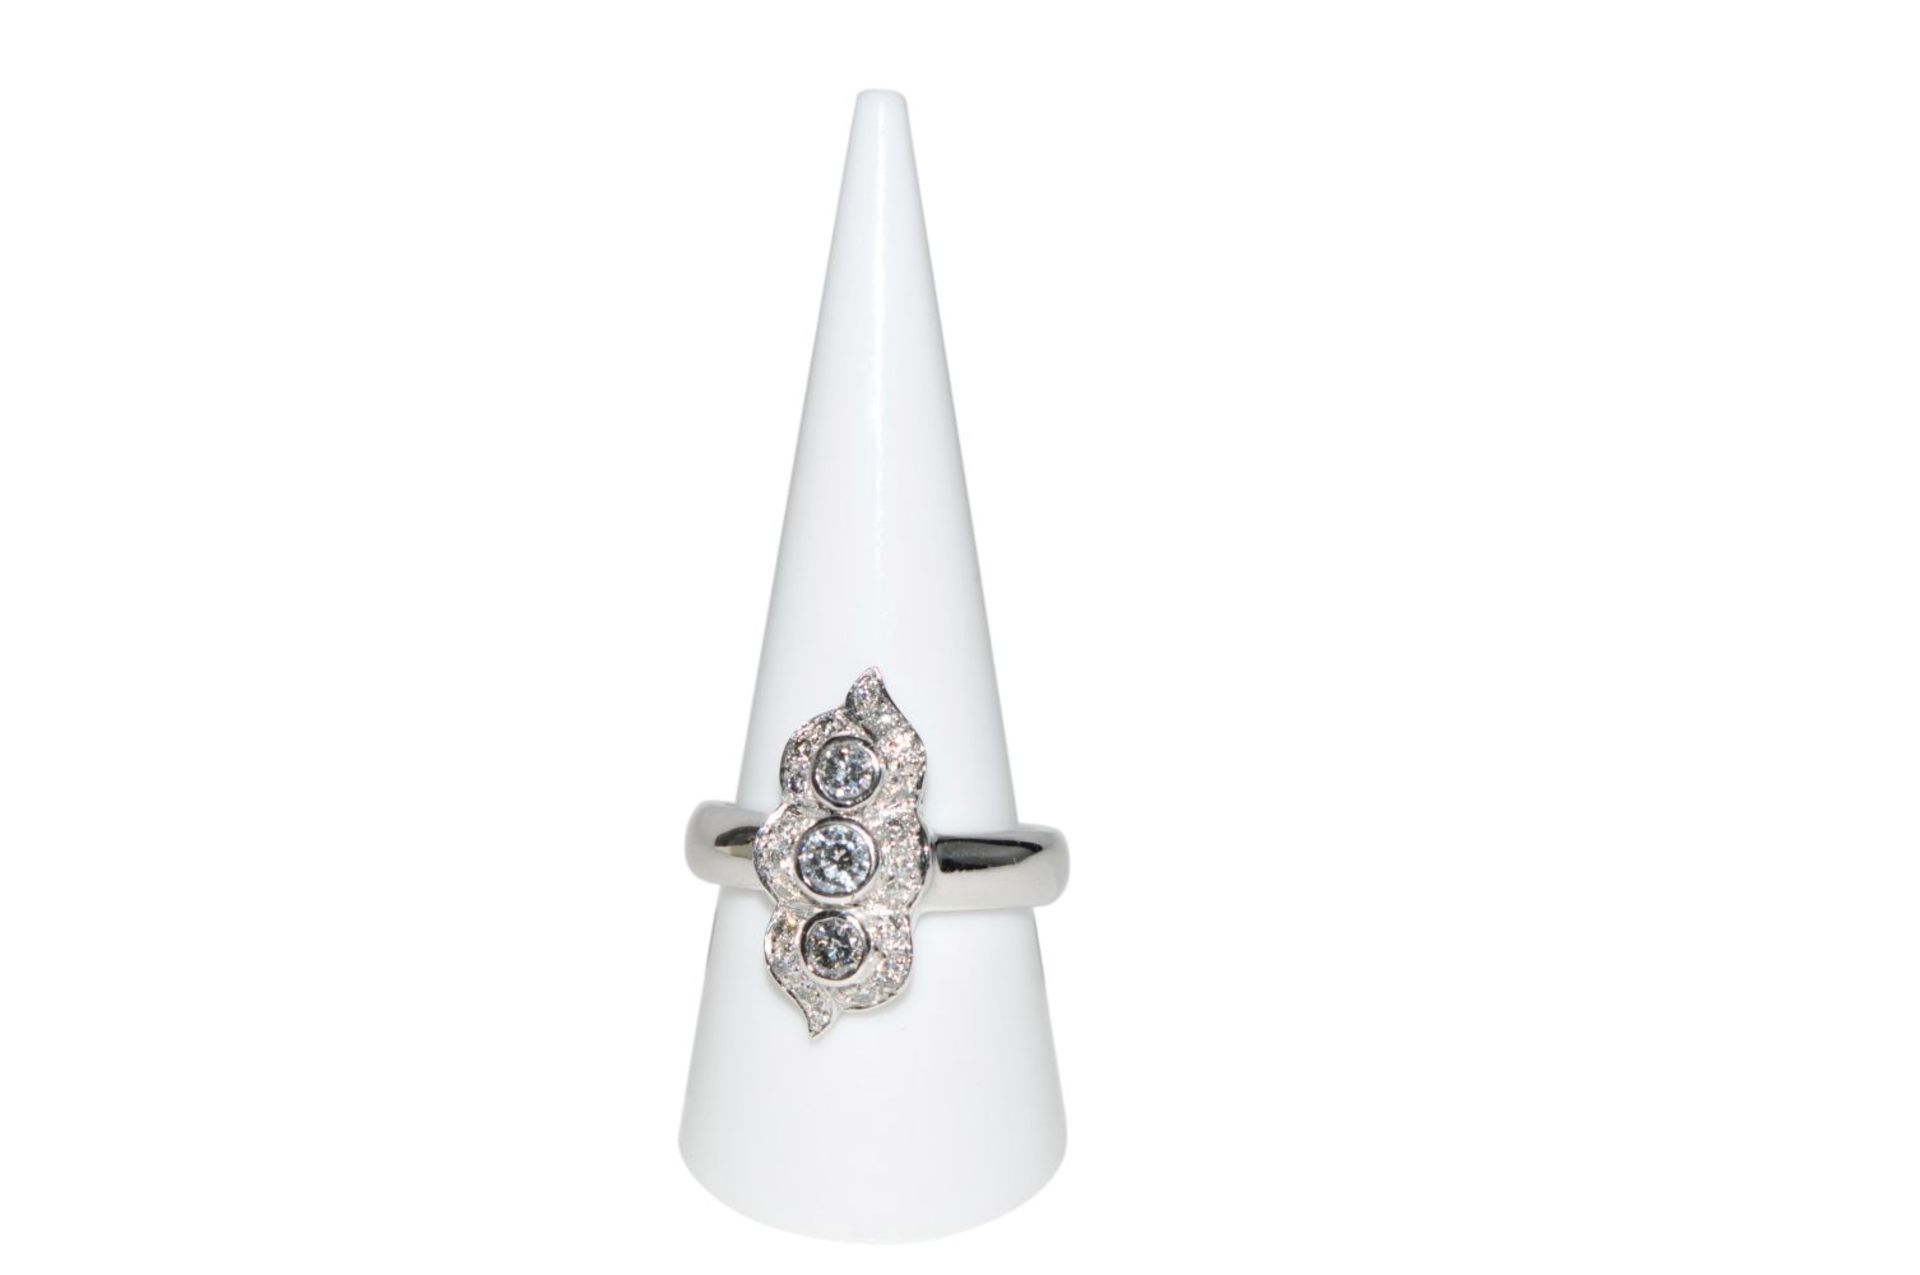 Los 109 - Diamond ring18Kt white gold ring with diamonds total carat weight approx. 1,17ct, total weight 9,7g,